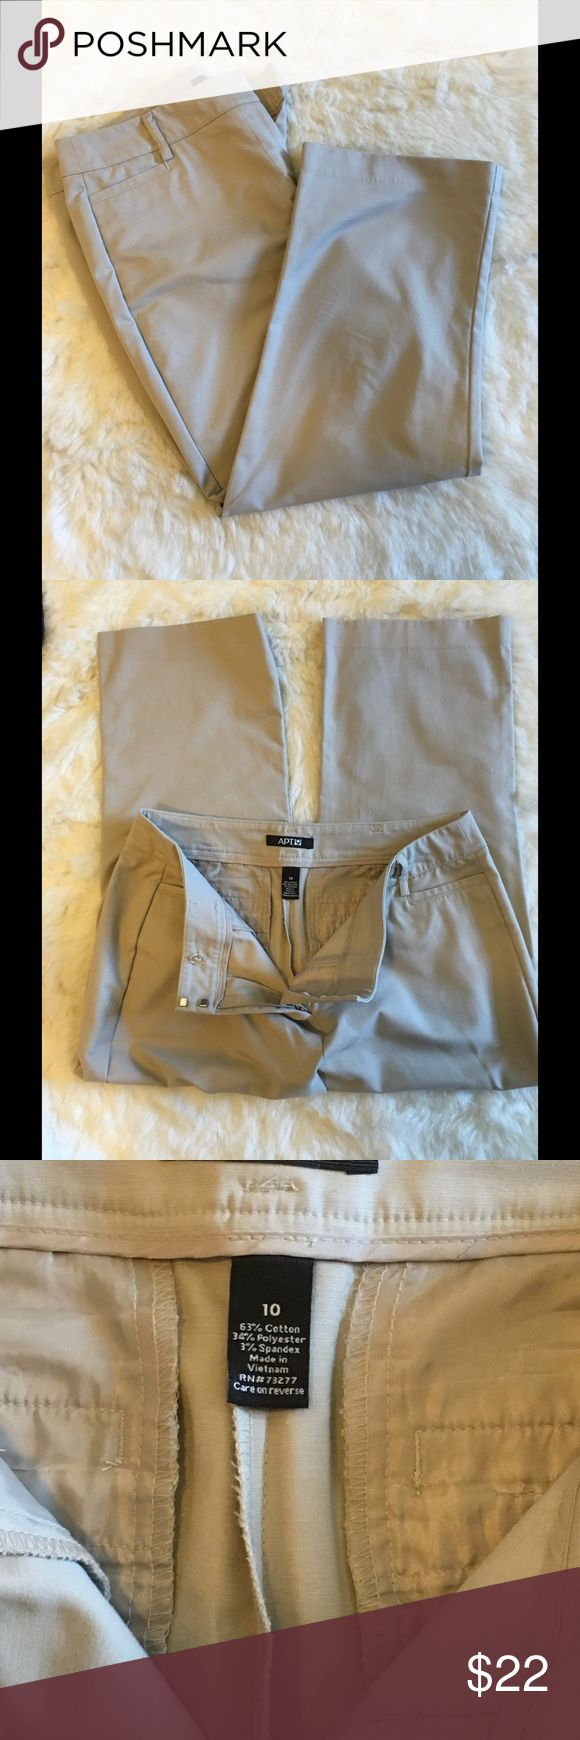 Apt. 9 khaki Capri pants, size 10 With a slight stretch, these are your mainstay khaki capris! Excellent for work or for a day out. Falls to mid calf. Structured fabric, maintains shape. Like new. Apt. 9 Pants Capris